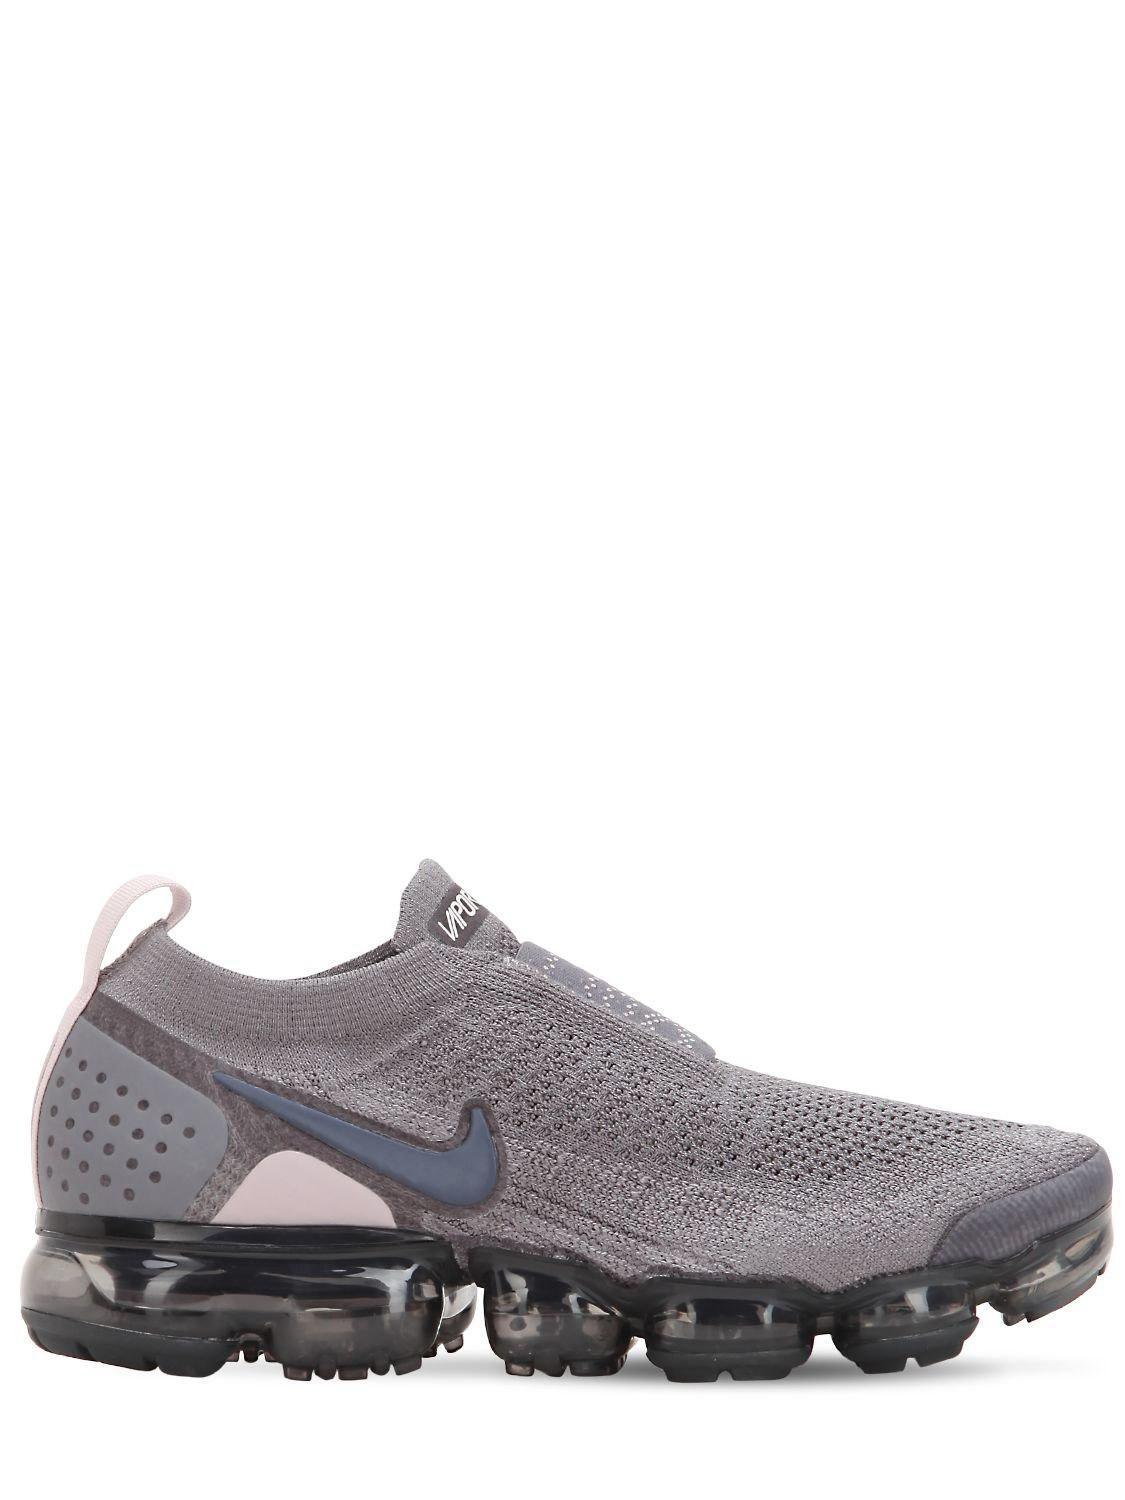 e746c12709670 Lyst - Nike Air Vapormax Flyknit Moc Sneakers in Gray - Save 12%